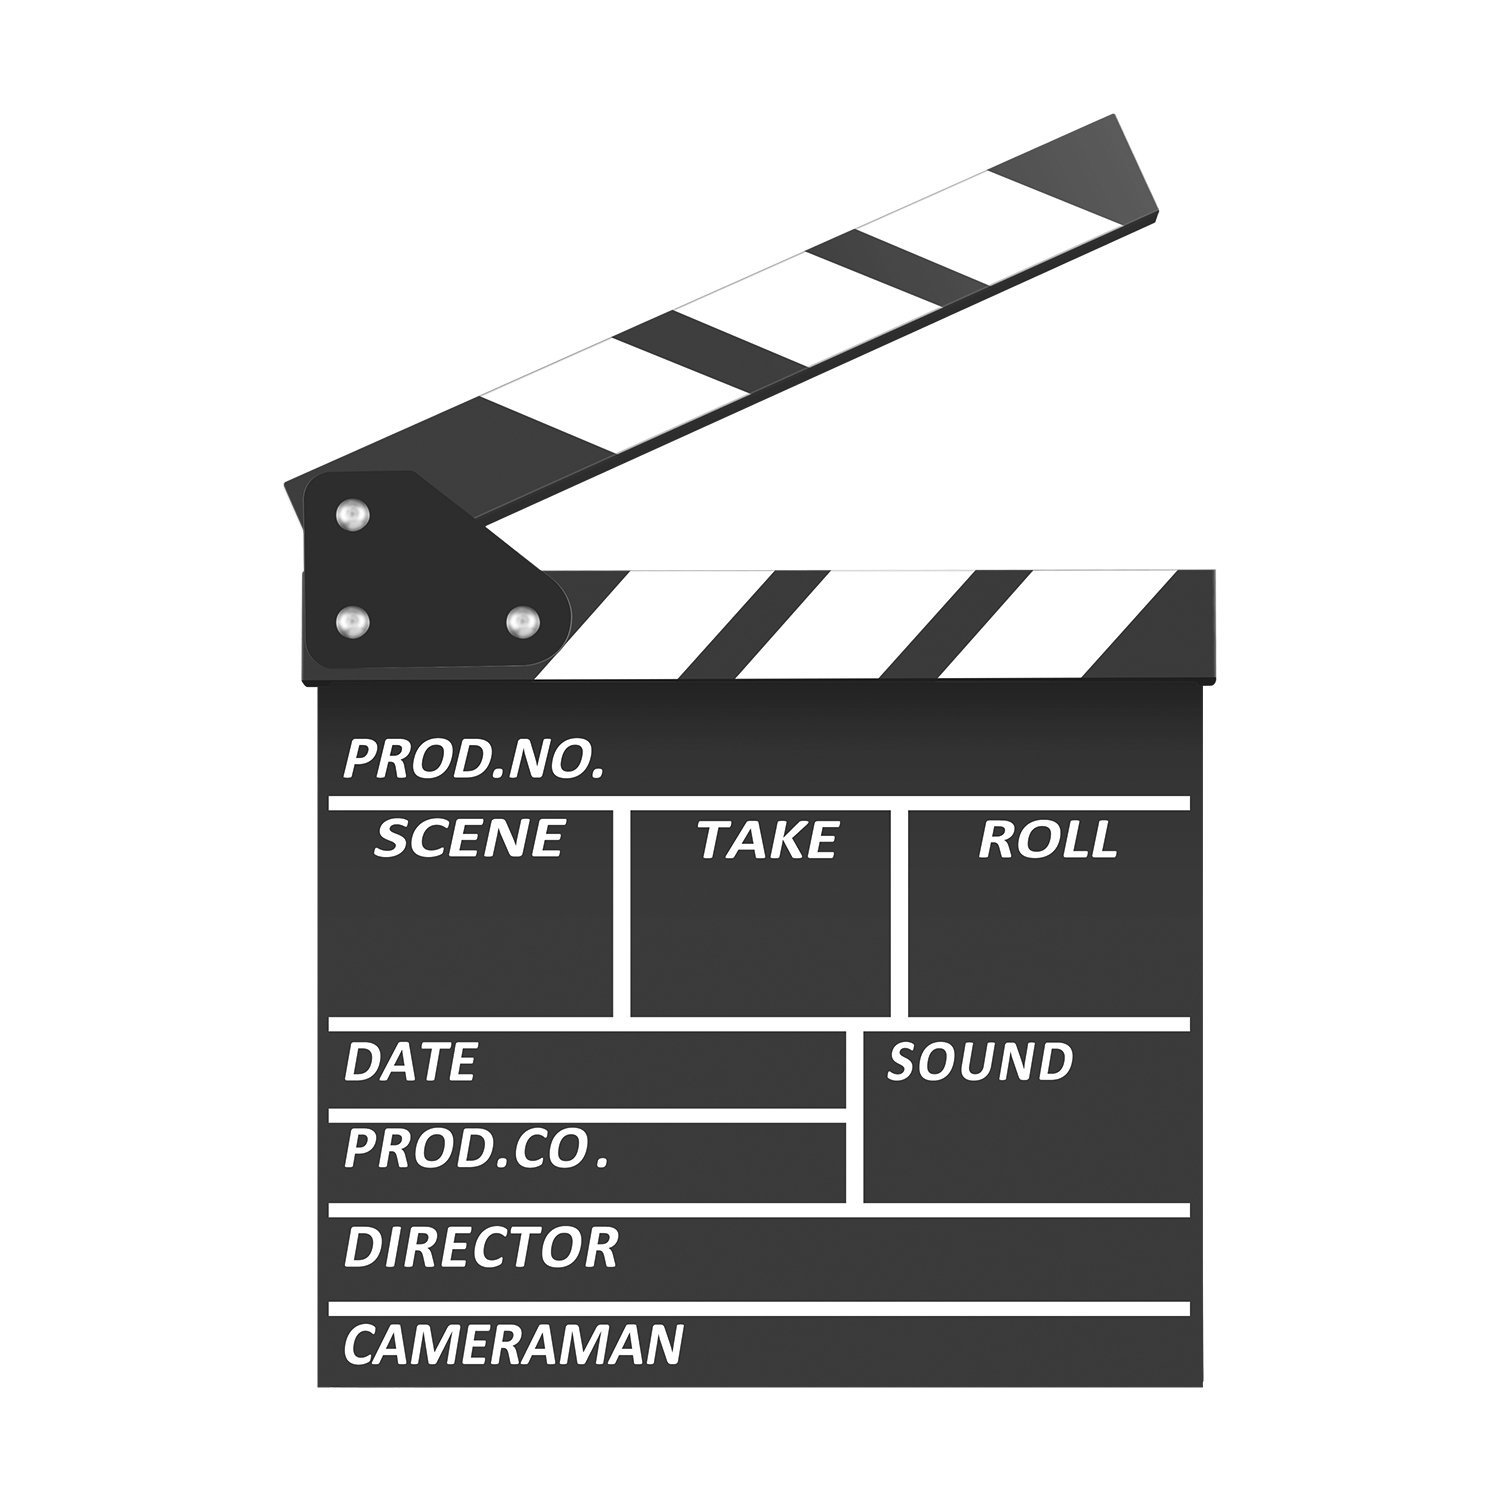 Neewer Professional Wooden Film Movie Clapboard, 7.9 X 7.9 inches/20 X 20 Centimeters Black & White Director Film Slateboard Clapper Board for Movie Scene Production Decoration Prop